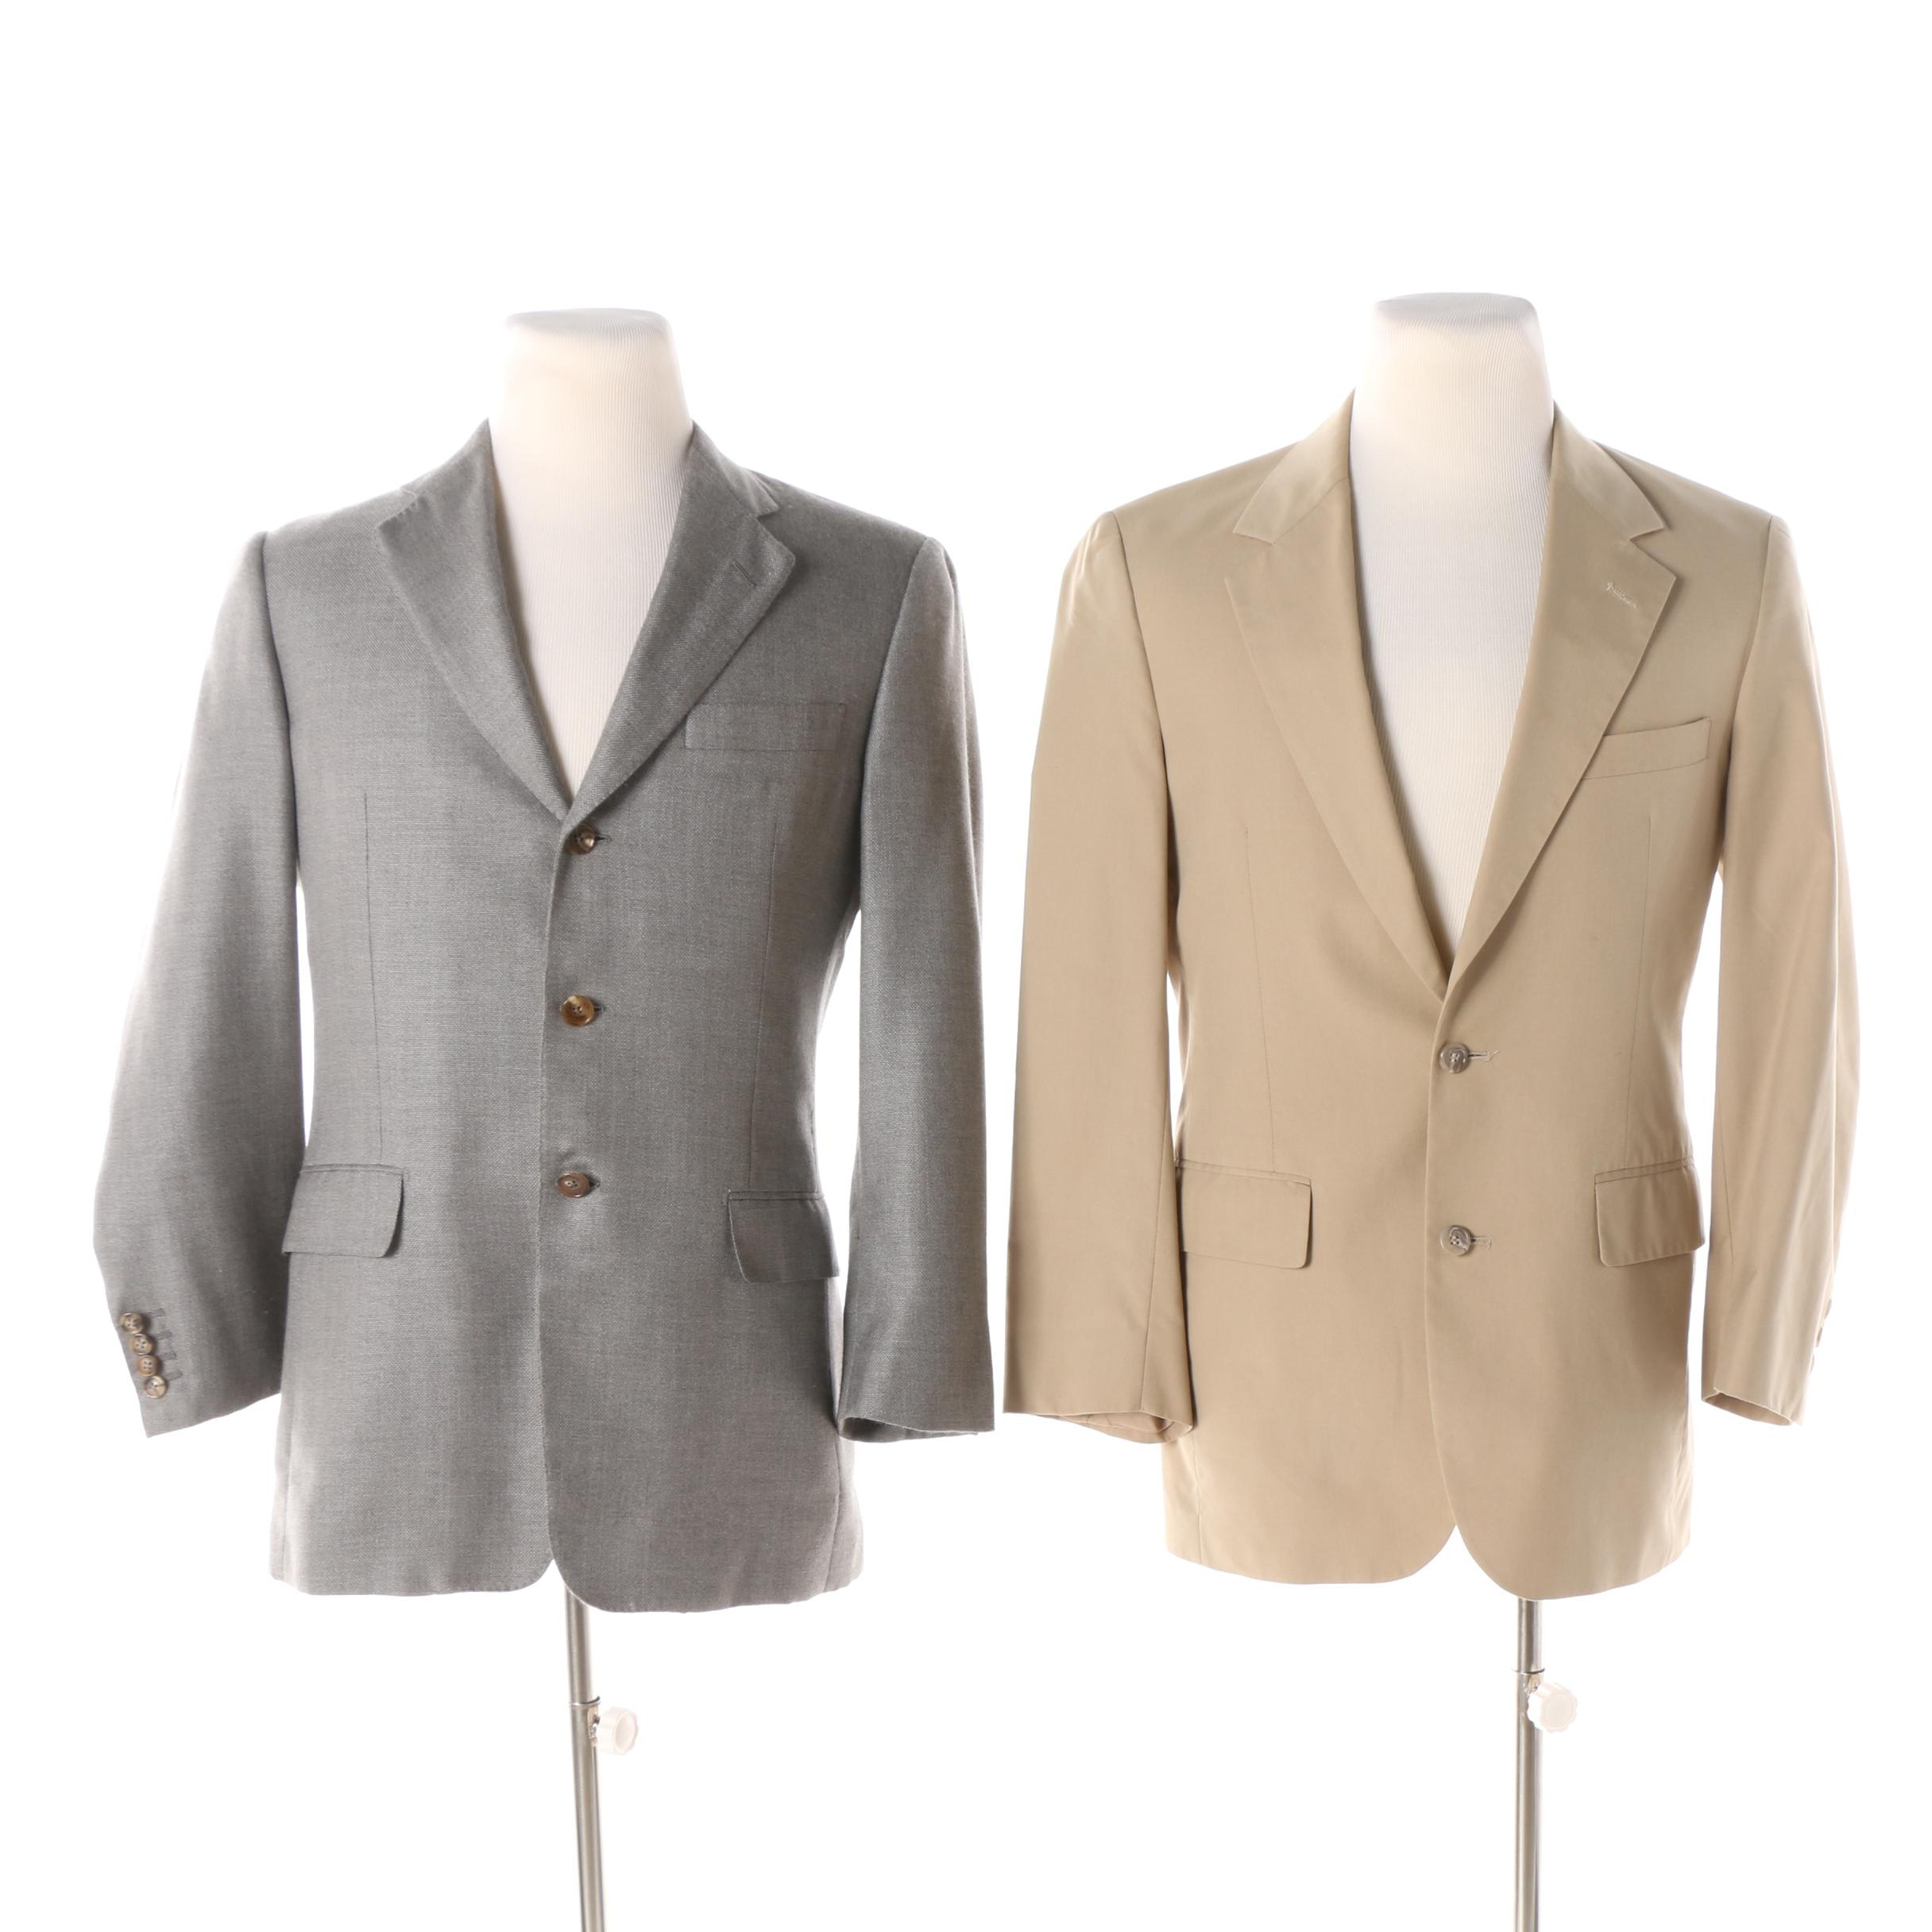 Brooks Brothers Khaki Sport Coat and Hickey Freeman Gray Sport Coat